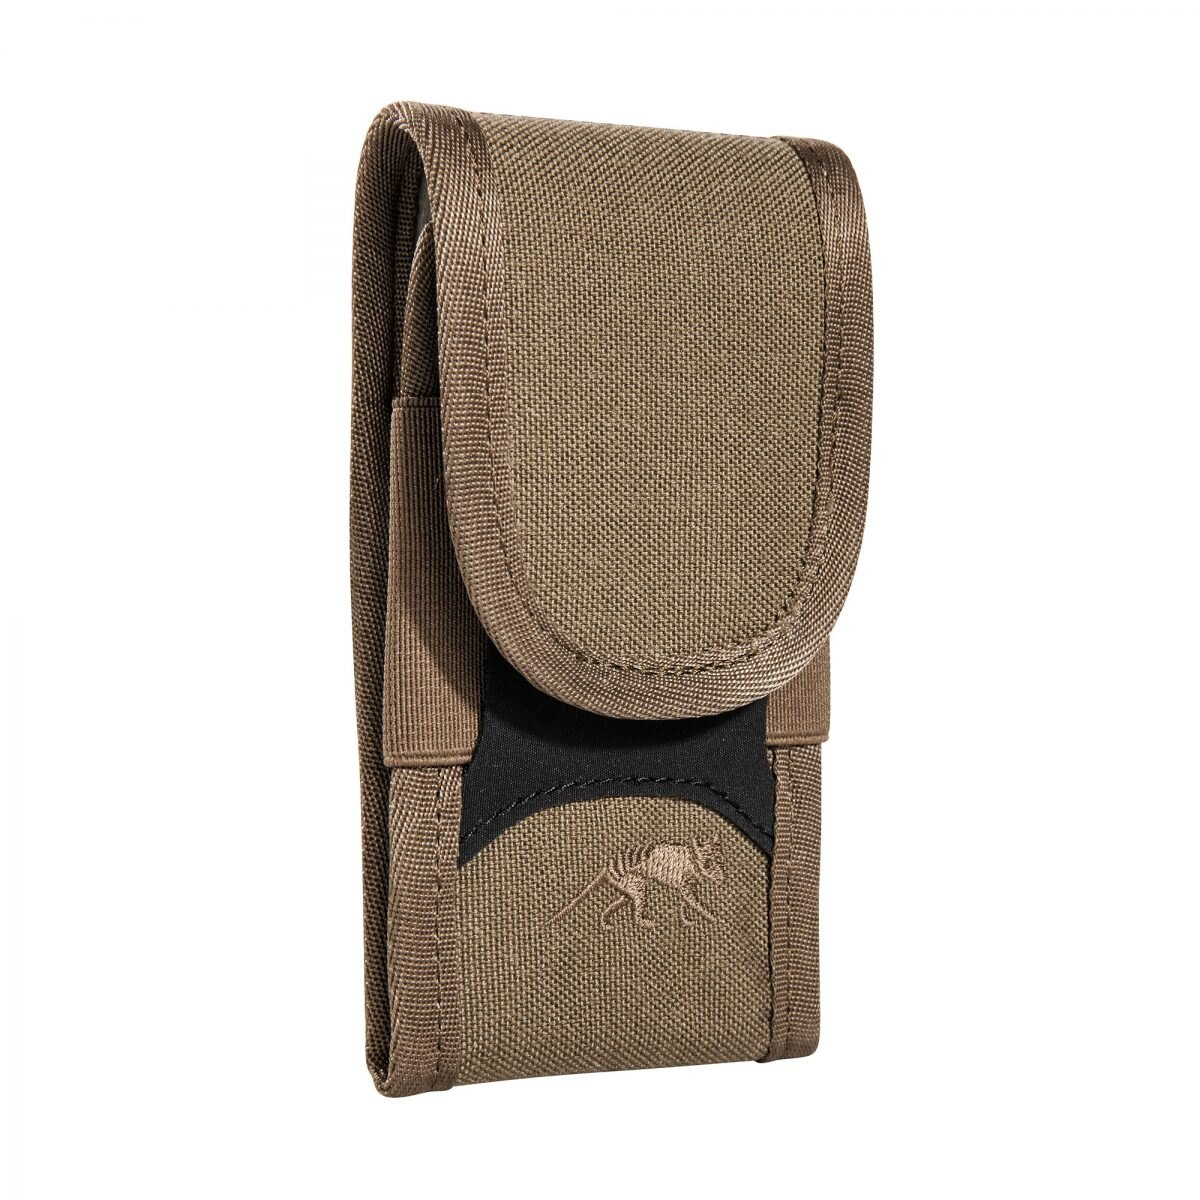 Pouzdro na mobil Tasmanian Tiger® Tactical Phone Cover – Coyote Brown (Barva: Coyote Brown)